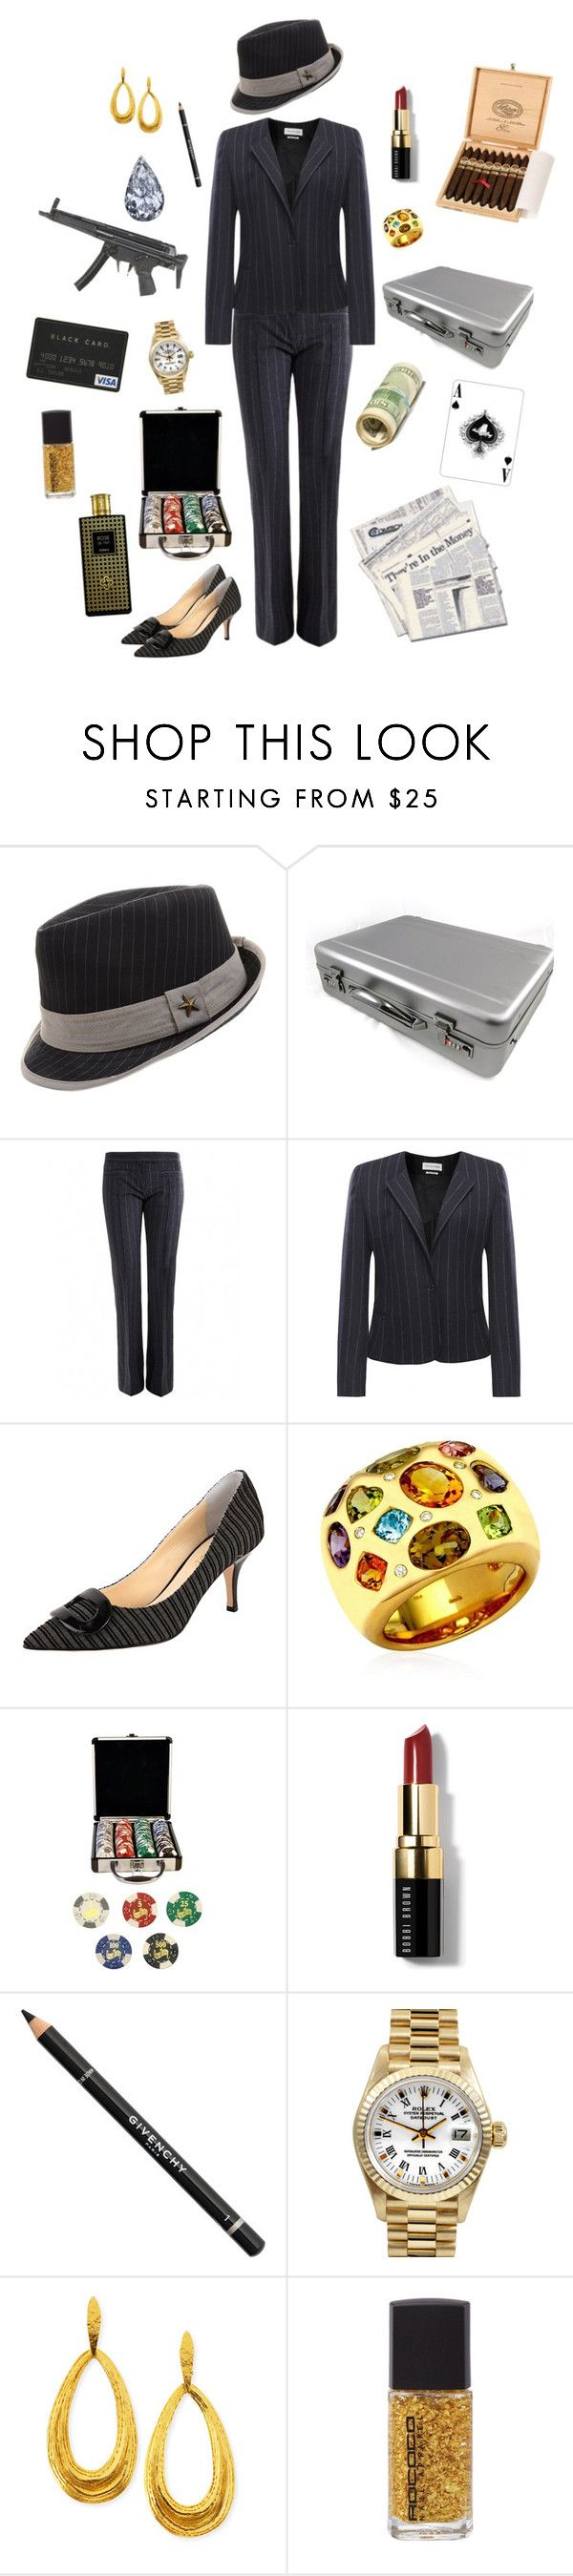 """""""Greed-Seven Deadly Sins"""" by conquistadorofsorts ❤ liked on Polyvore featuring Isabel Marant, Butter Shoes, Kiki mcdonough, Handle, Bobbi Brown Cosmetics, Givenchy, Rolex, Hervé Van Der Straeten, Rococo Sand and Houbigant"""